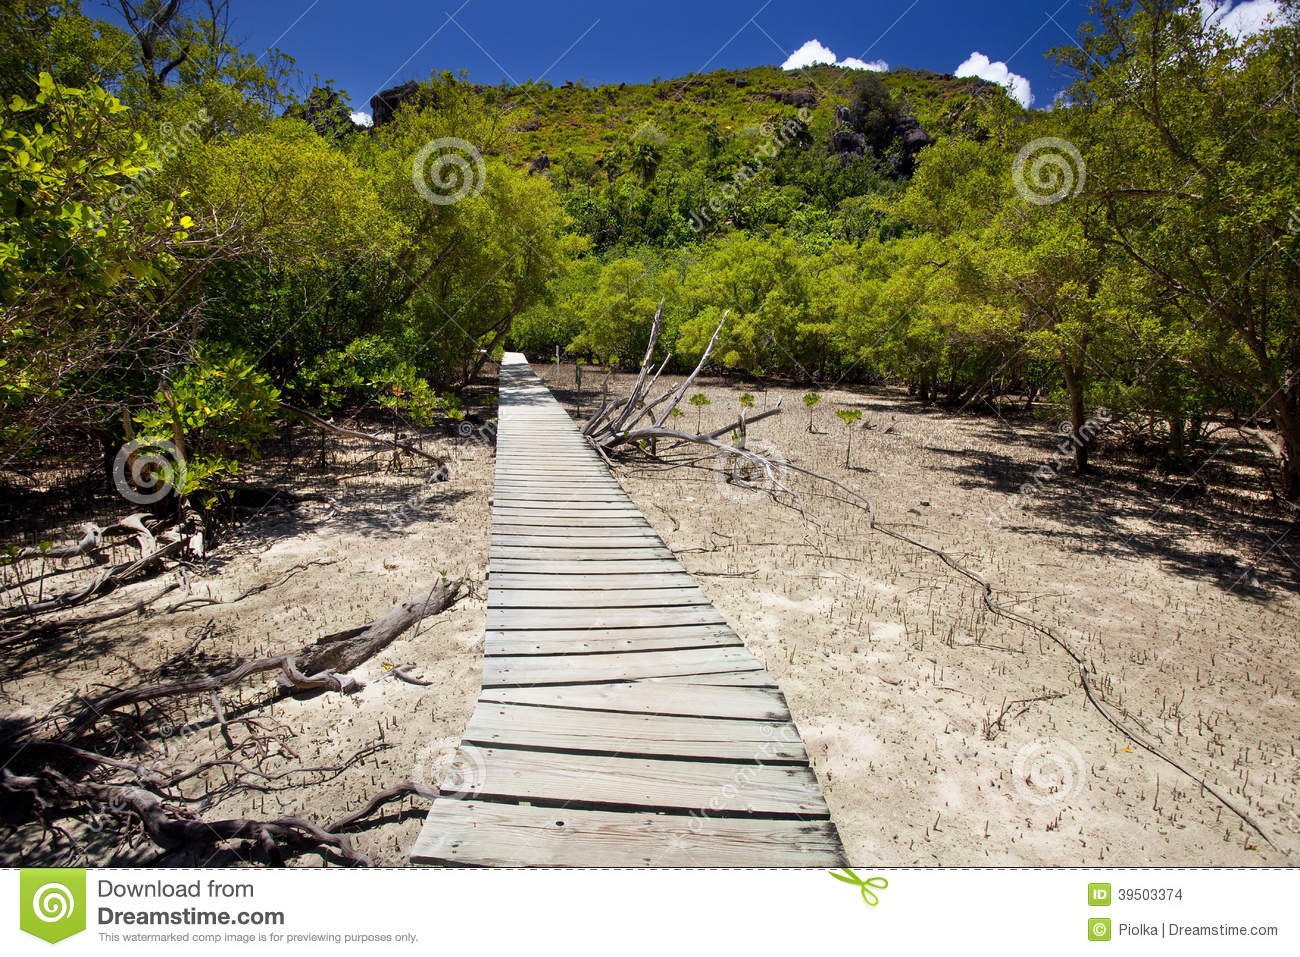 Trailway through the mangrove forest